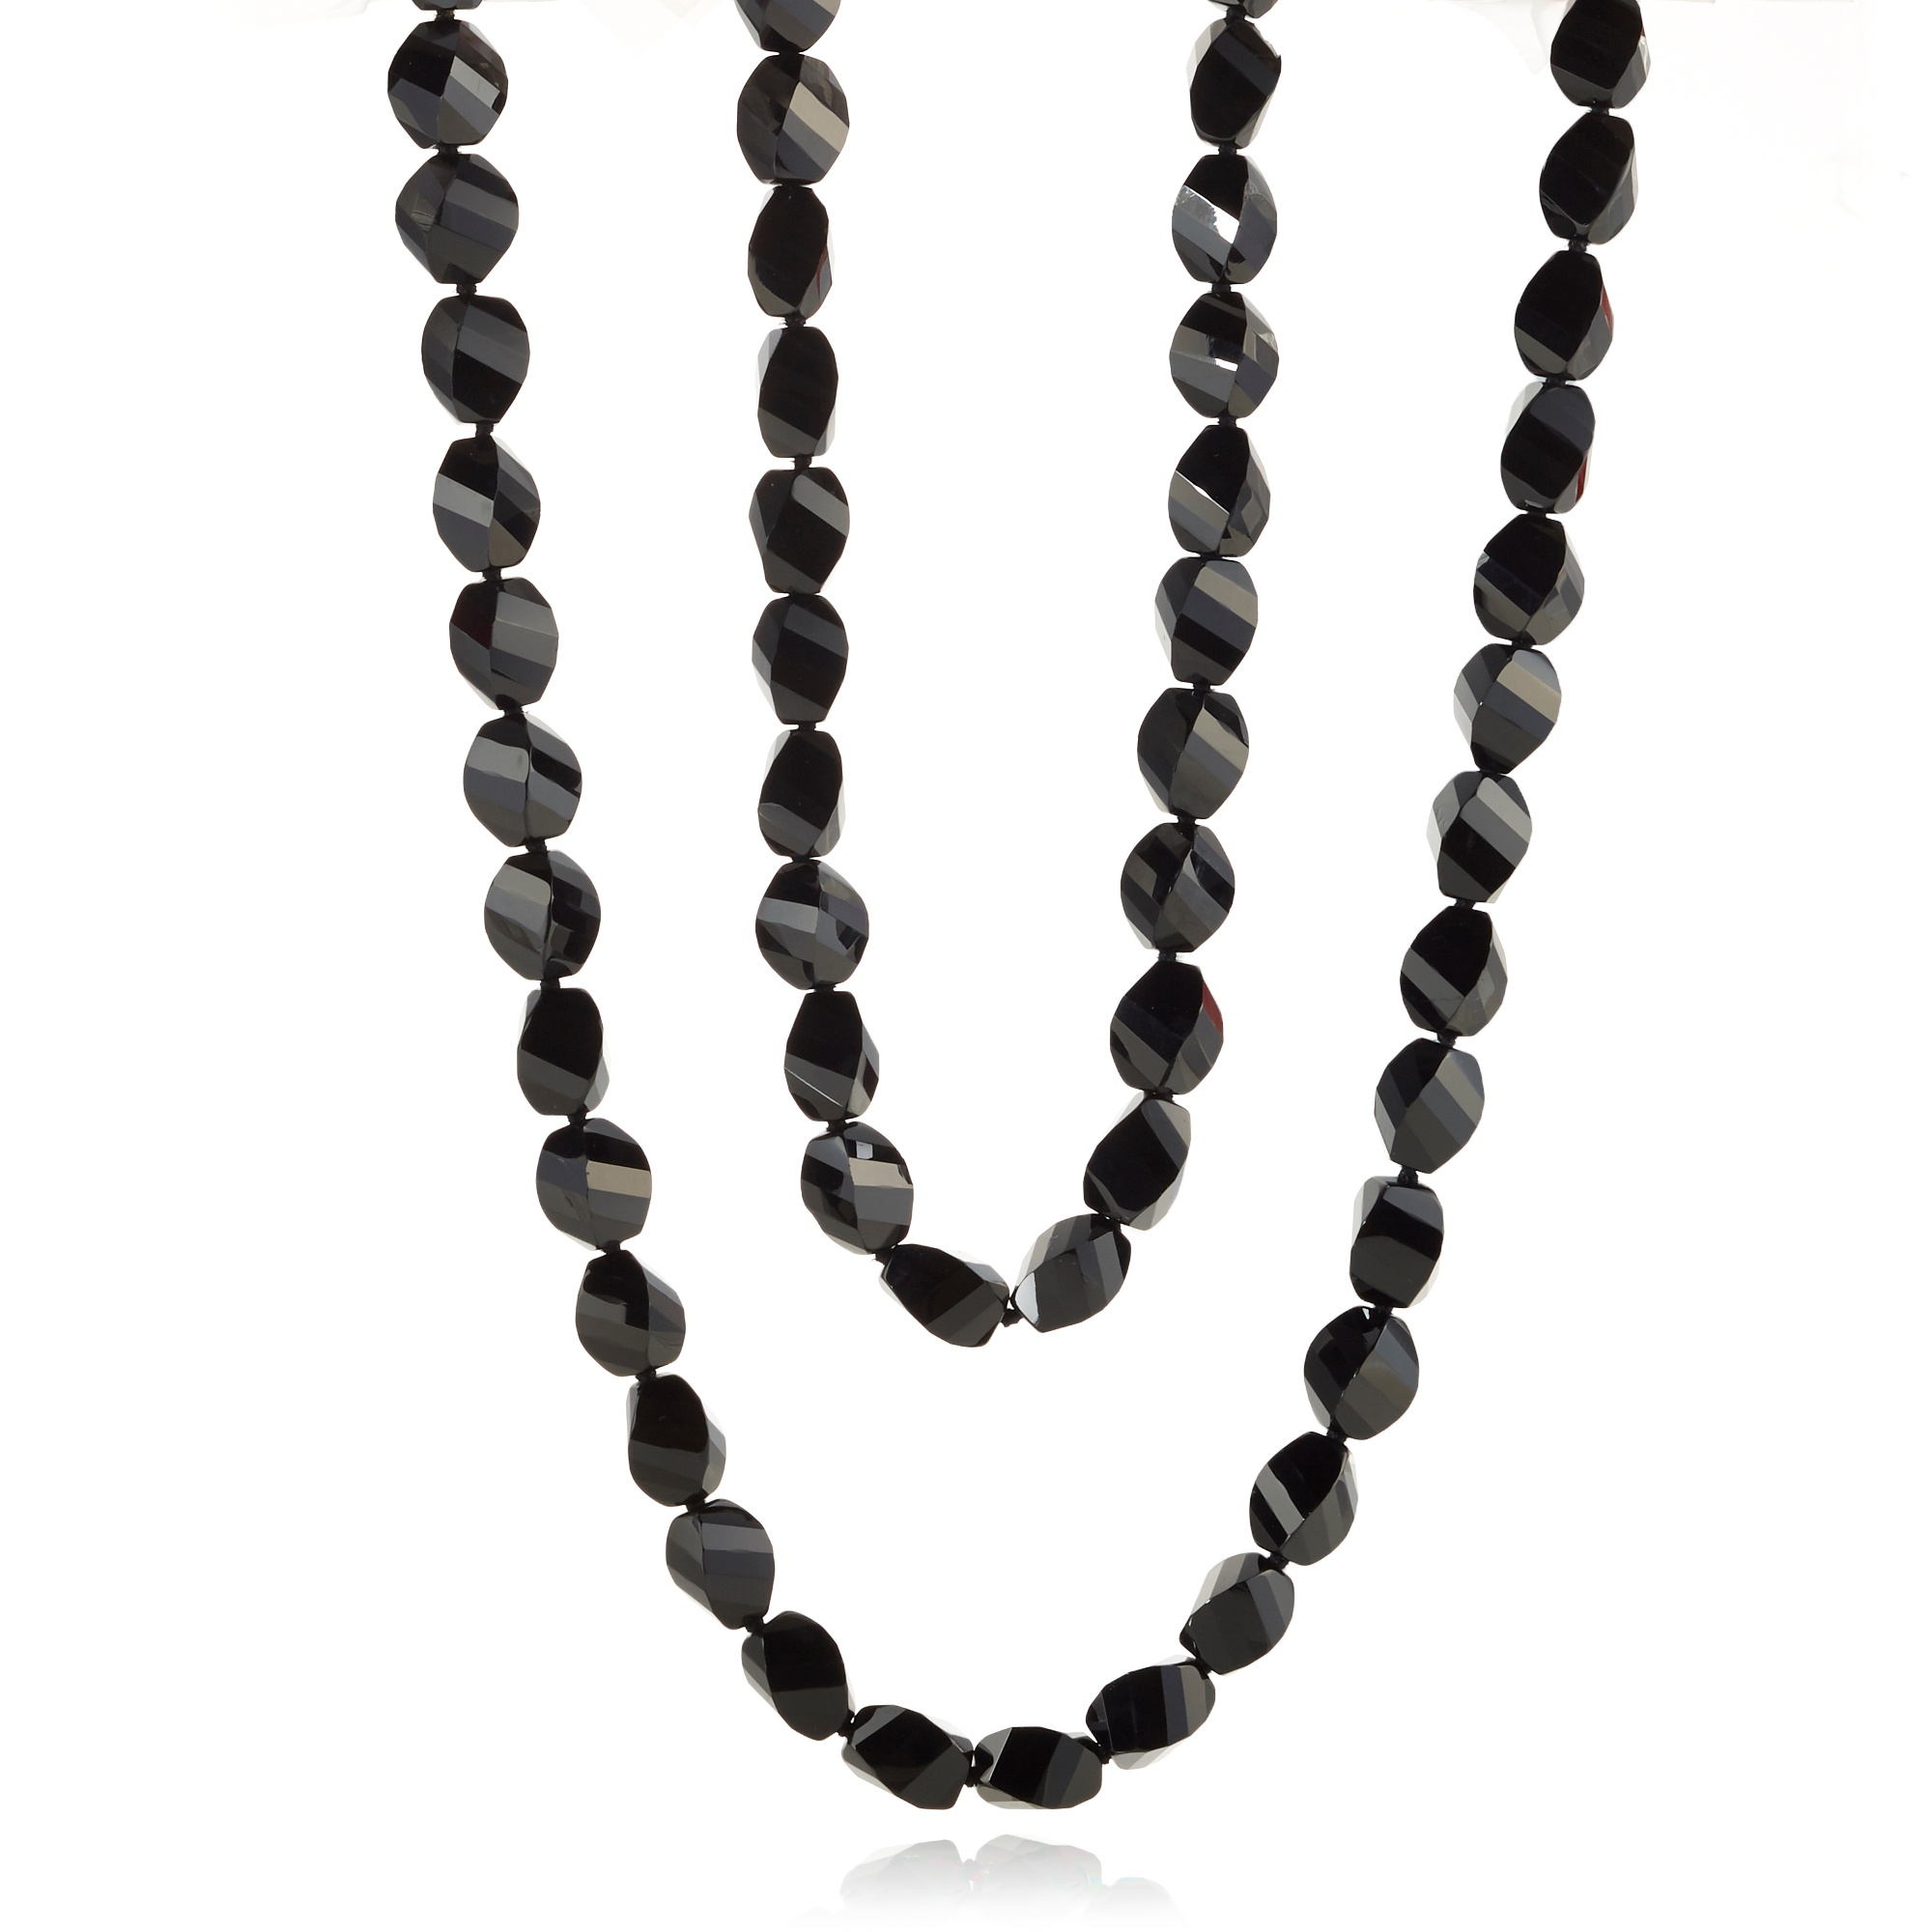 Oval Faceted Onyx Necklace